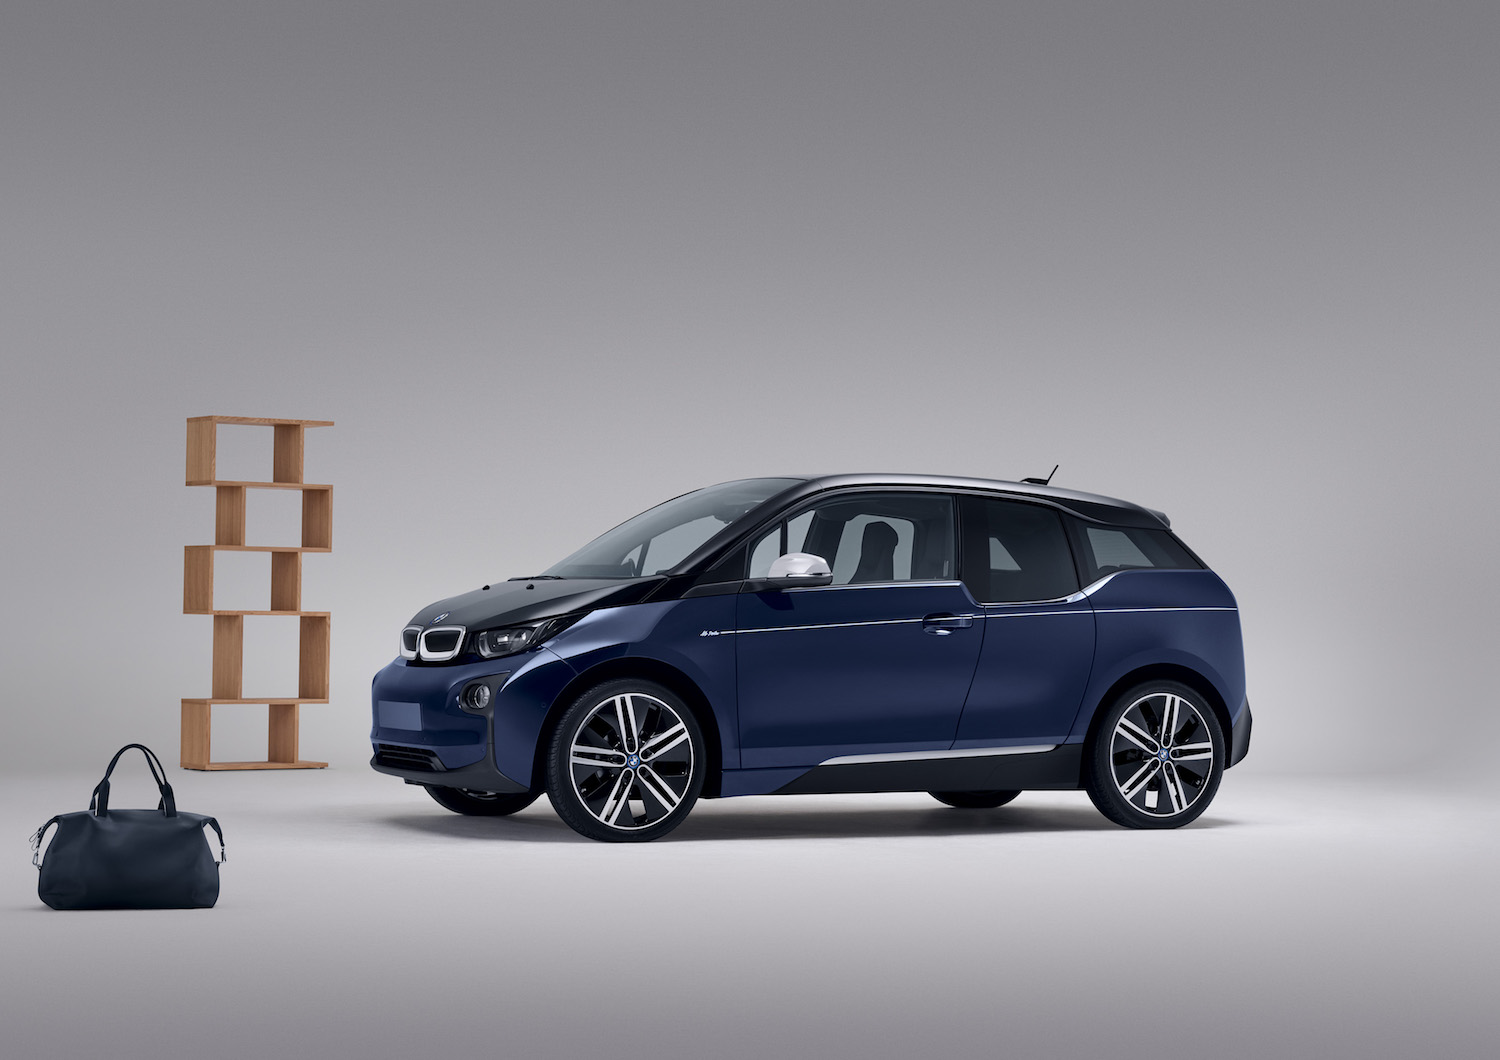 Der limitierte BMW i3 im Mr Porter Design. Quelle: BMW